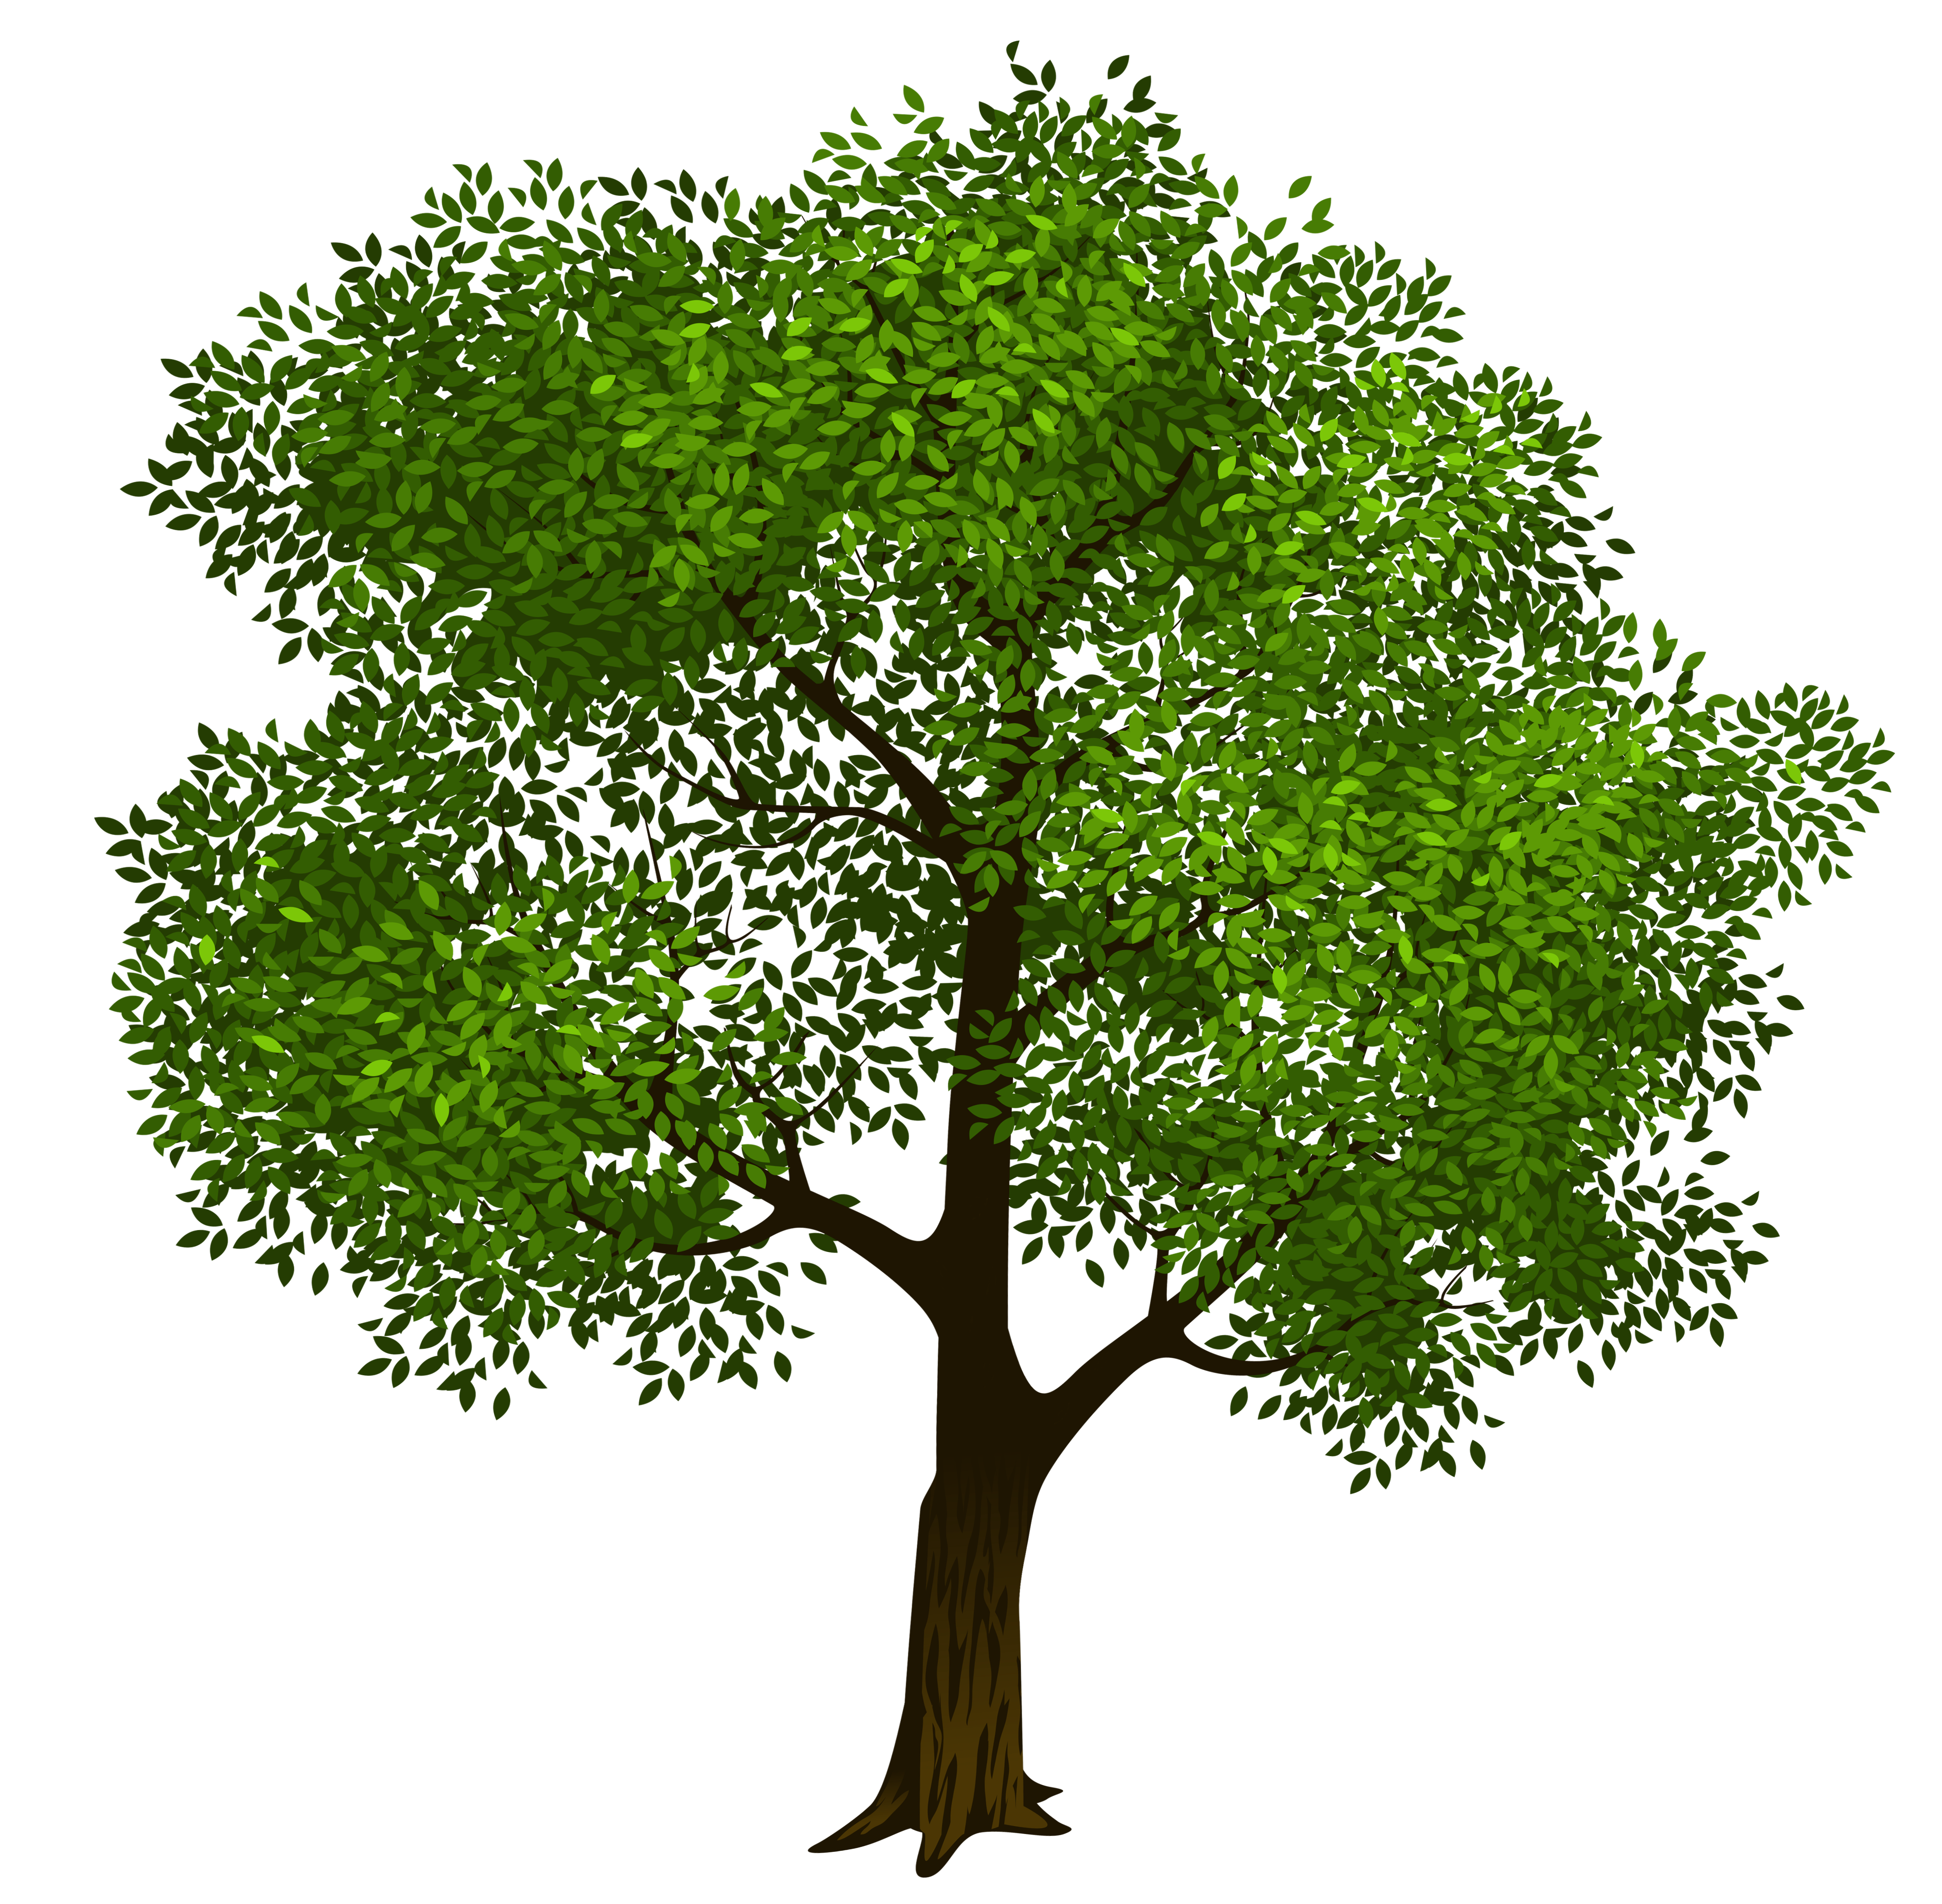 transparent tree clipart - Clipground